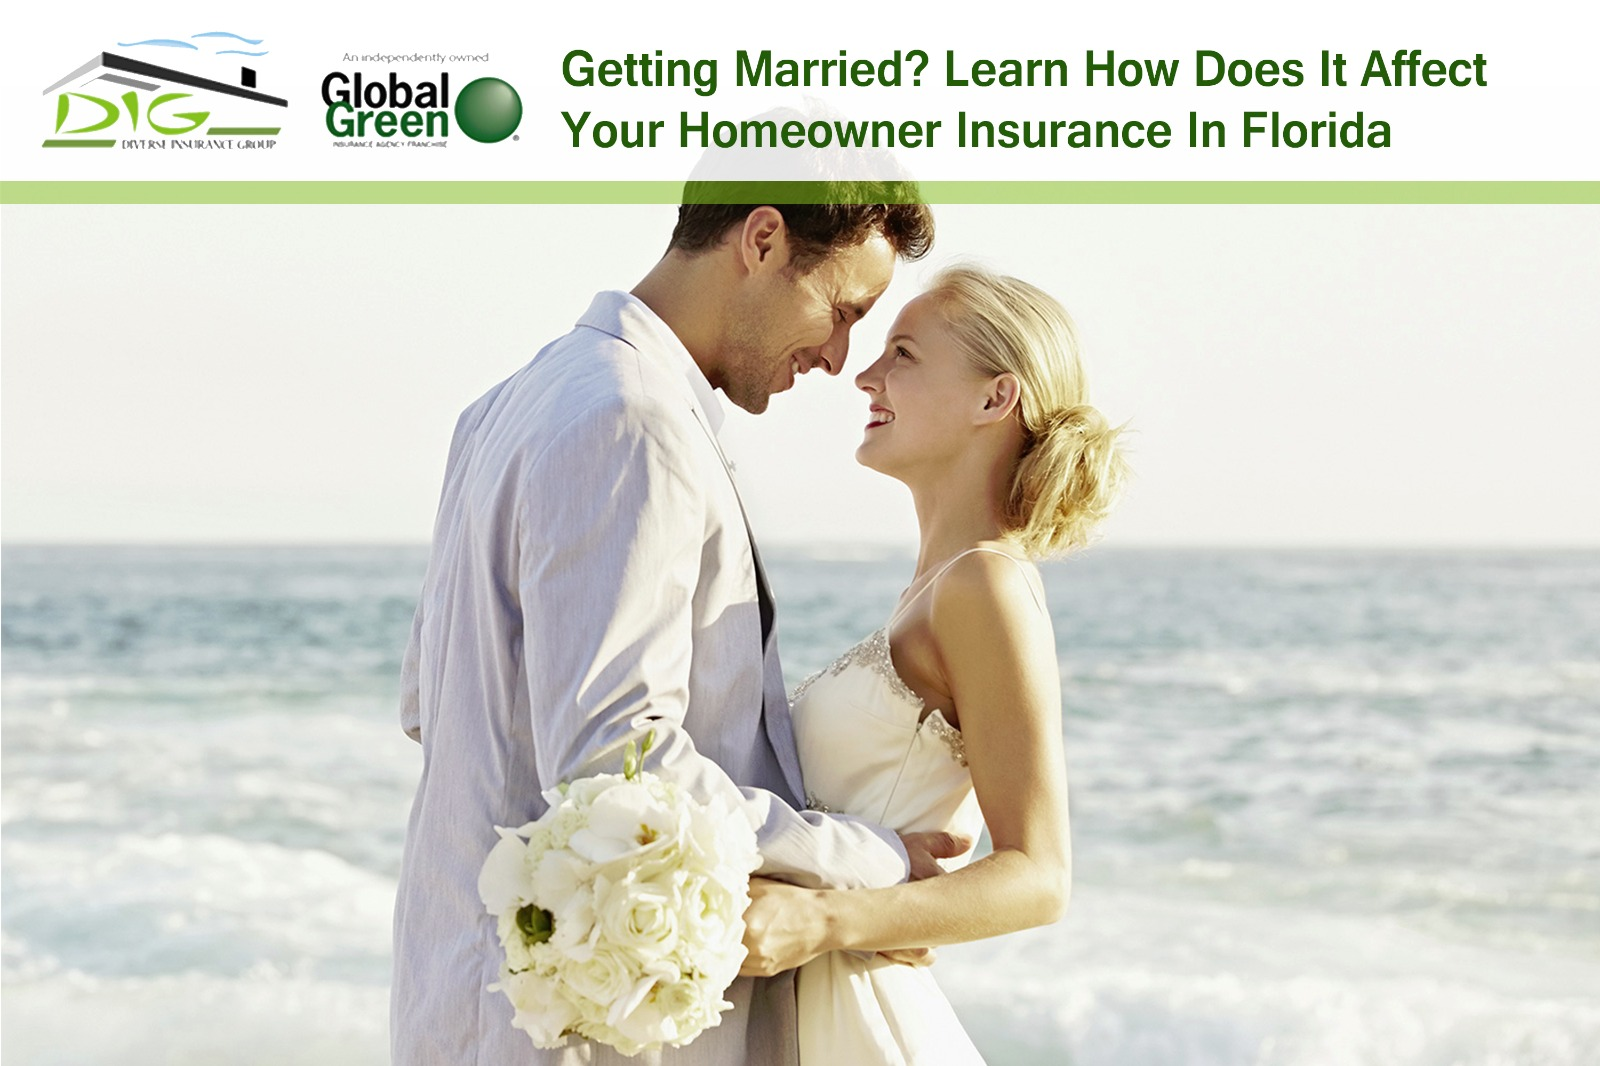 Getting married how it affect homeowner insurance in florida Homeowners insurance florida